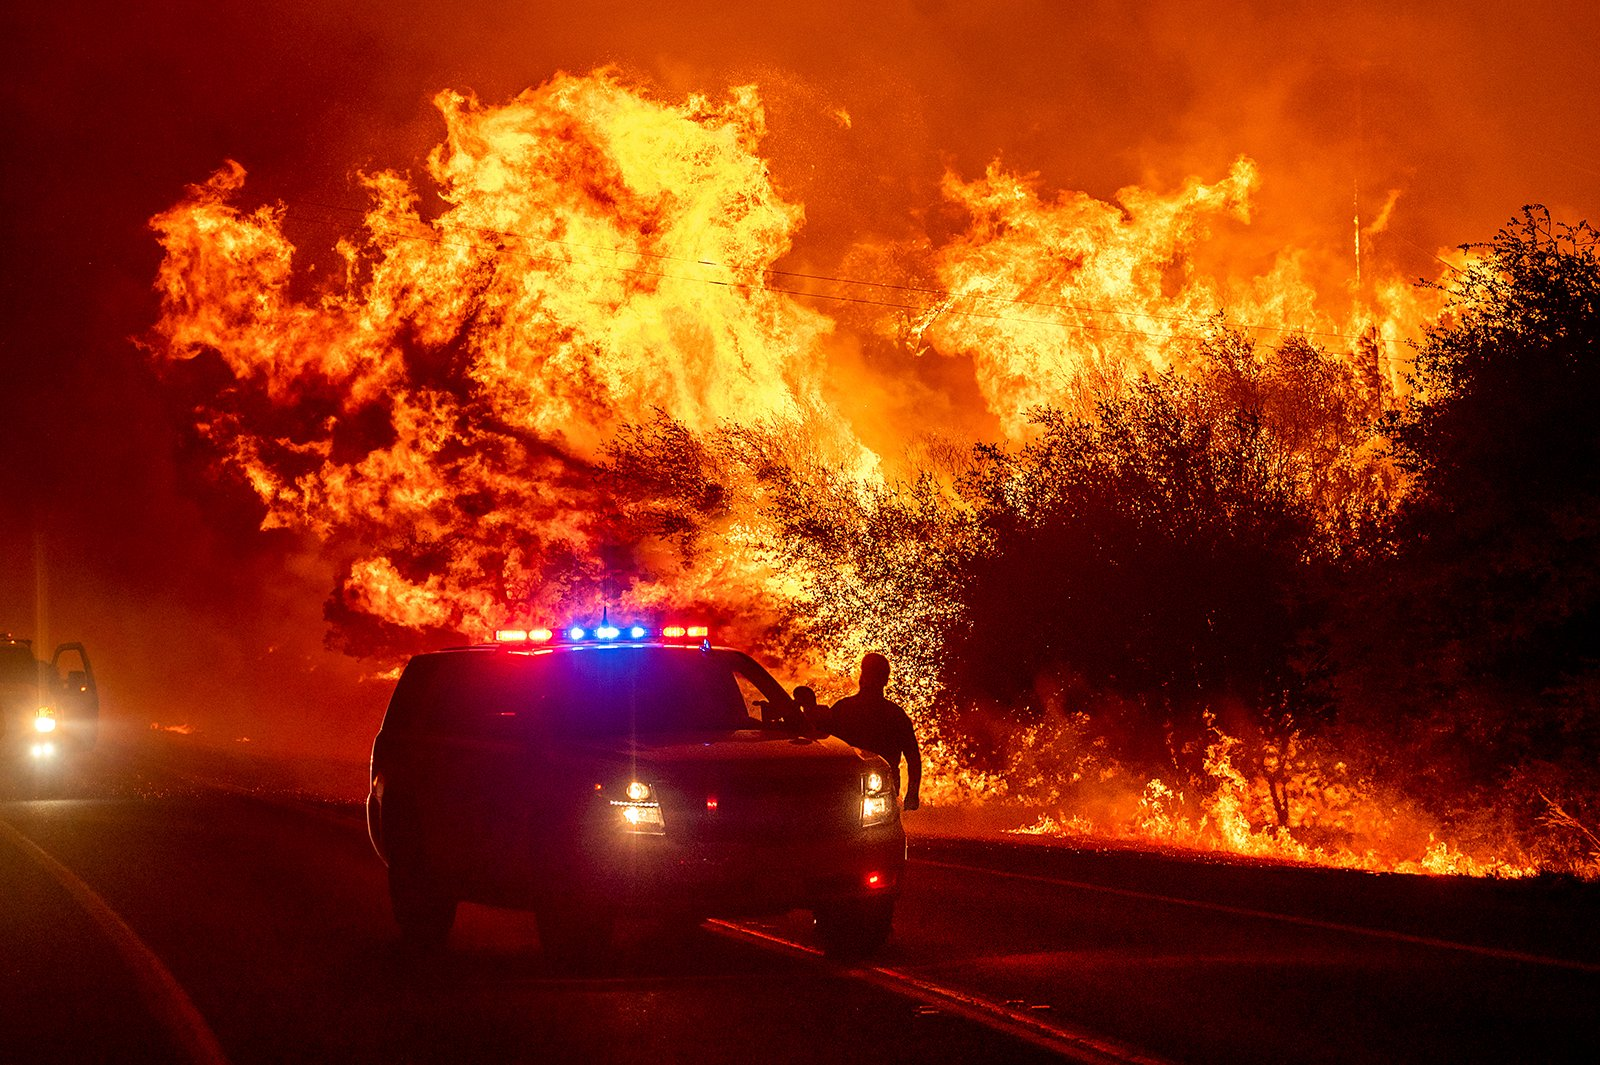 Flames lick above emergency vehicles on Highway 162 as the Bear Fire burns in Oroville, California, Wednesday, Sept. 9, 2020. The blaze, part of the lightning-sparked North Complex, expanded at a critical rate of spread as winds buffeted the region. (AP Photo/Noah Berger)